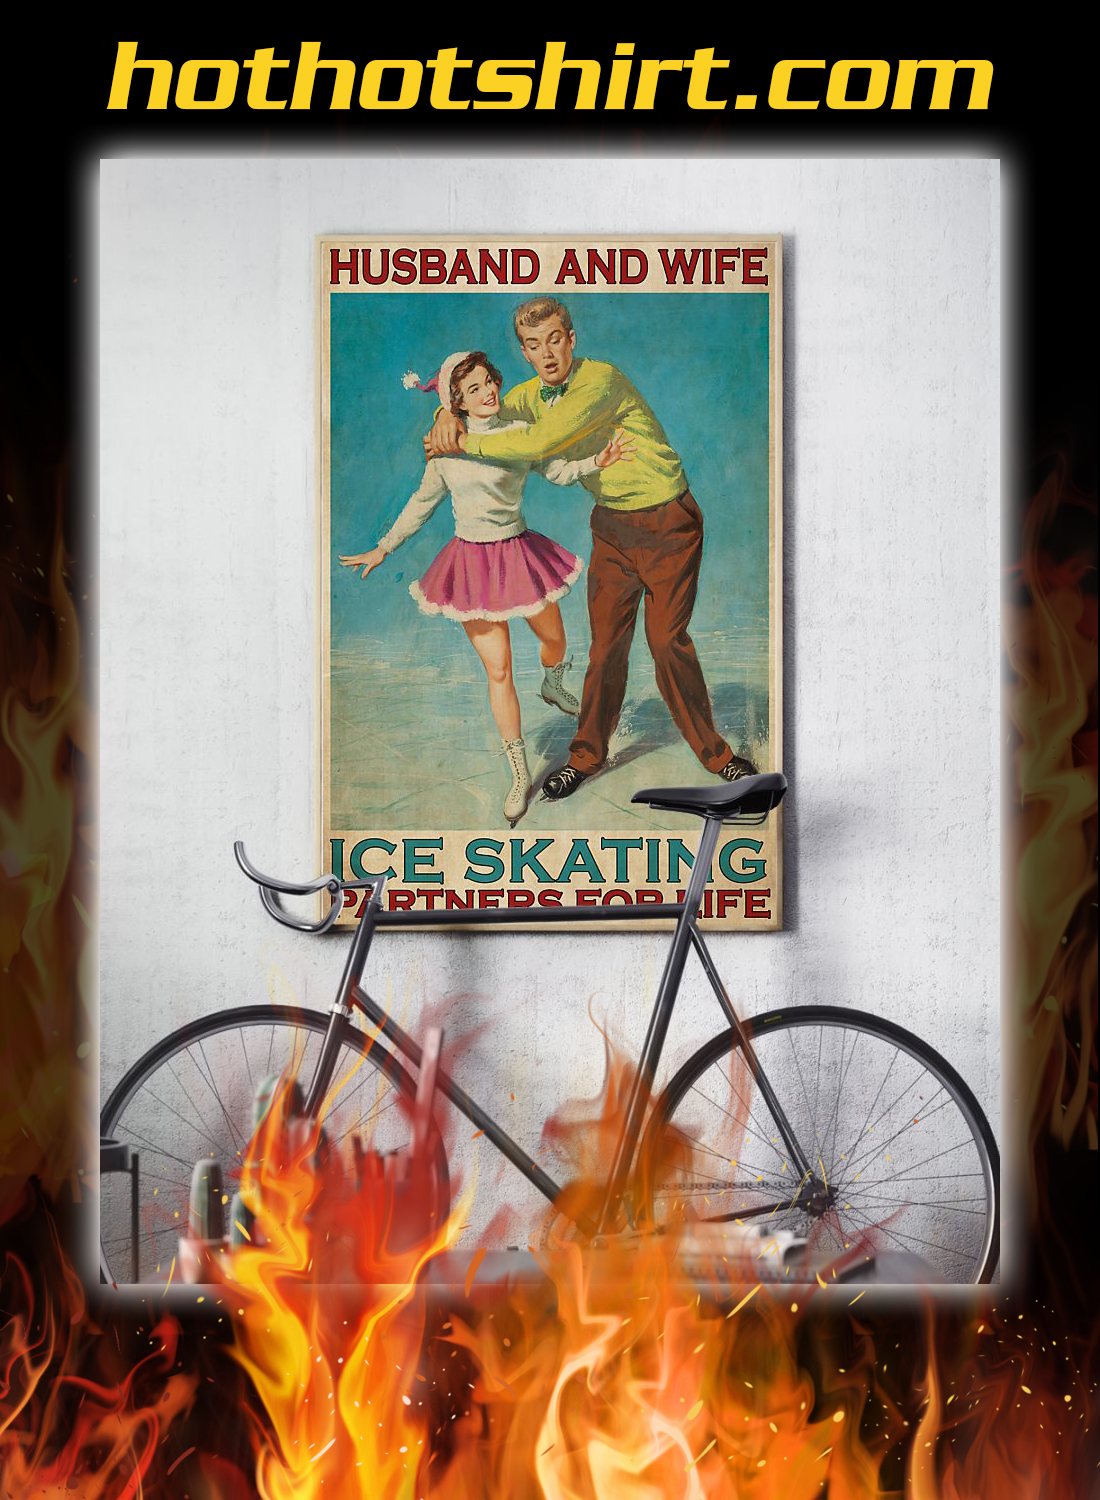 Husband and wife ice skating partners for life poster 3